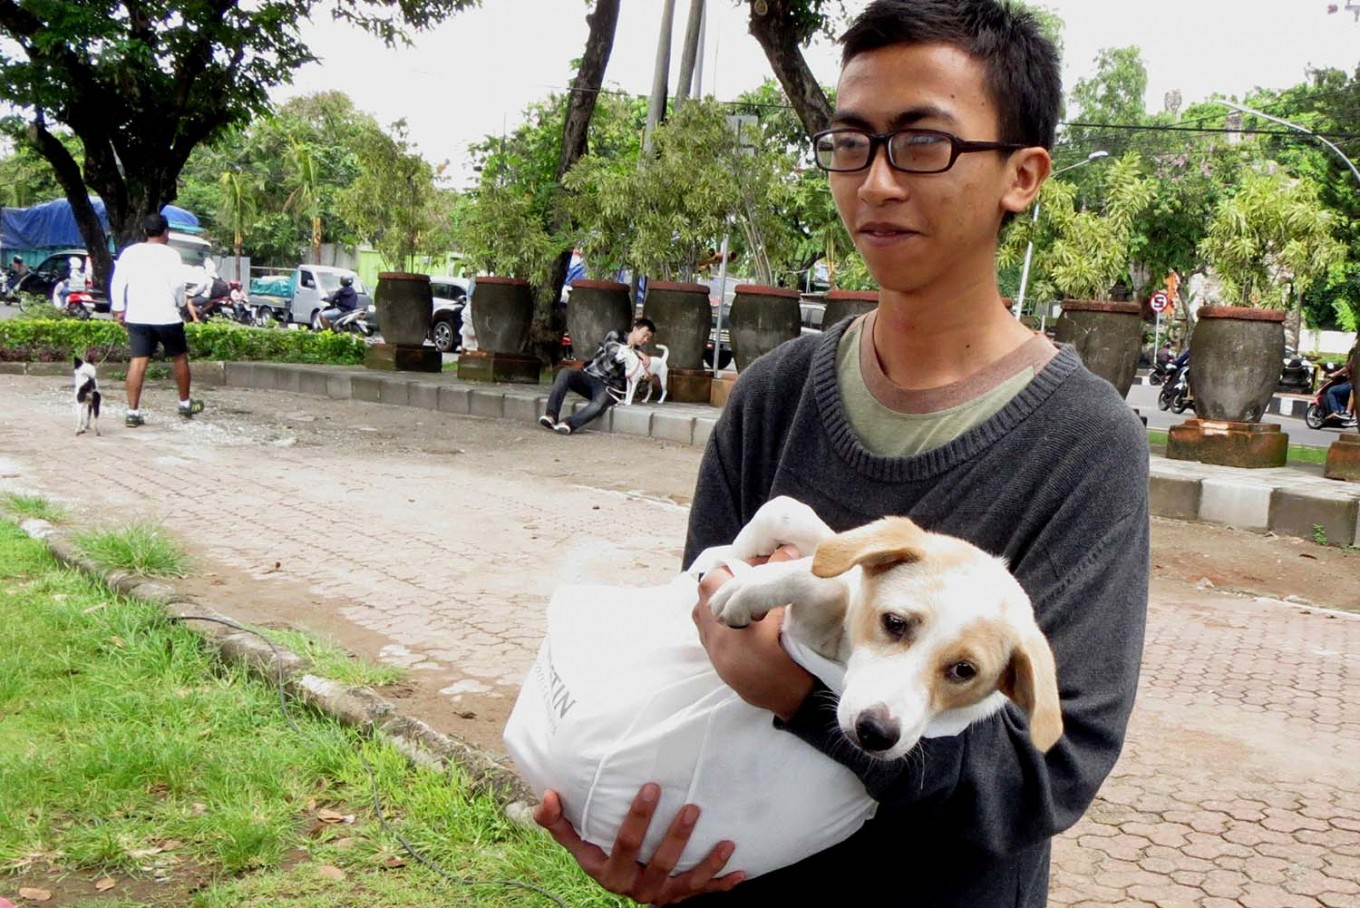 A man carries his dog before having it vaccinated during a free rabies vaccination and neutering program at Lumintang Field, Denpasar, on Nov. 24, 2016. JP/ Zul Trio Anggono